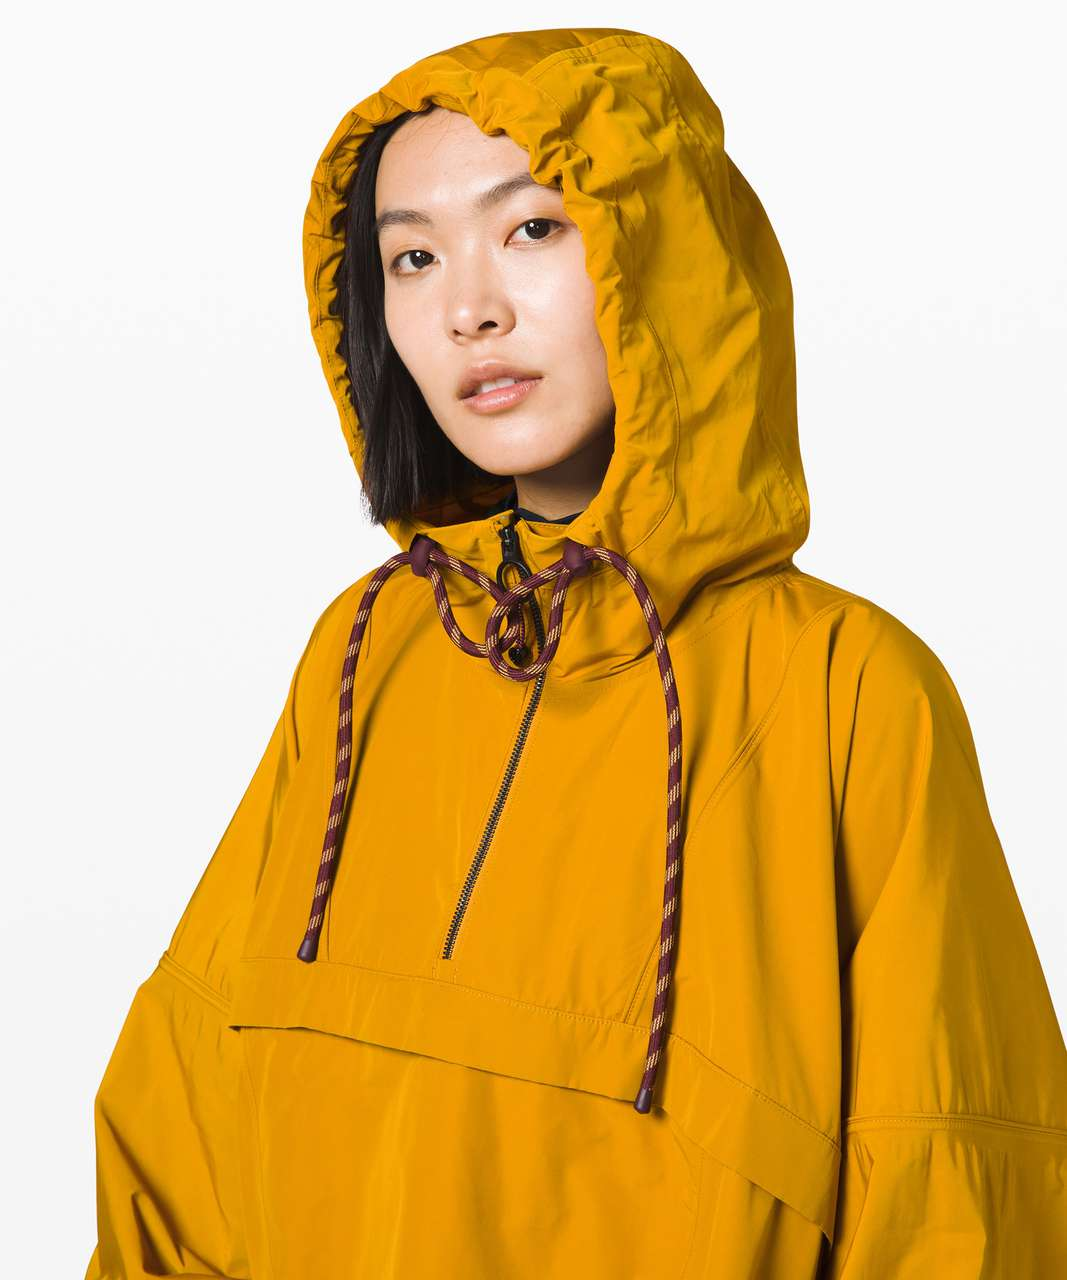 Lululemon Face Forward Cape *lululemon x Roksanda - Fools Gold / Garnet